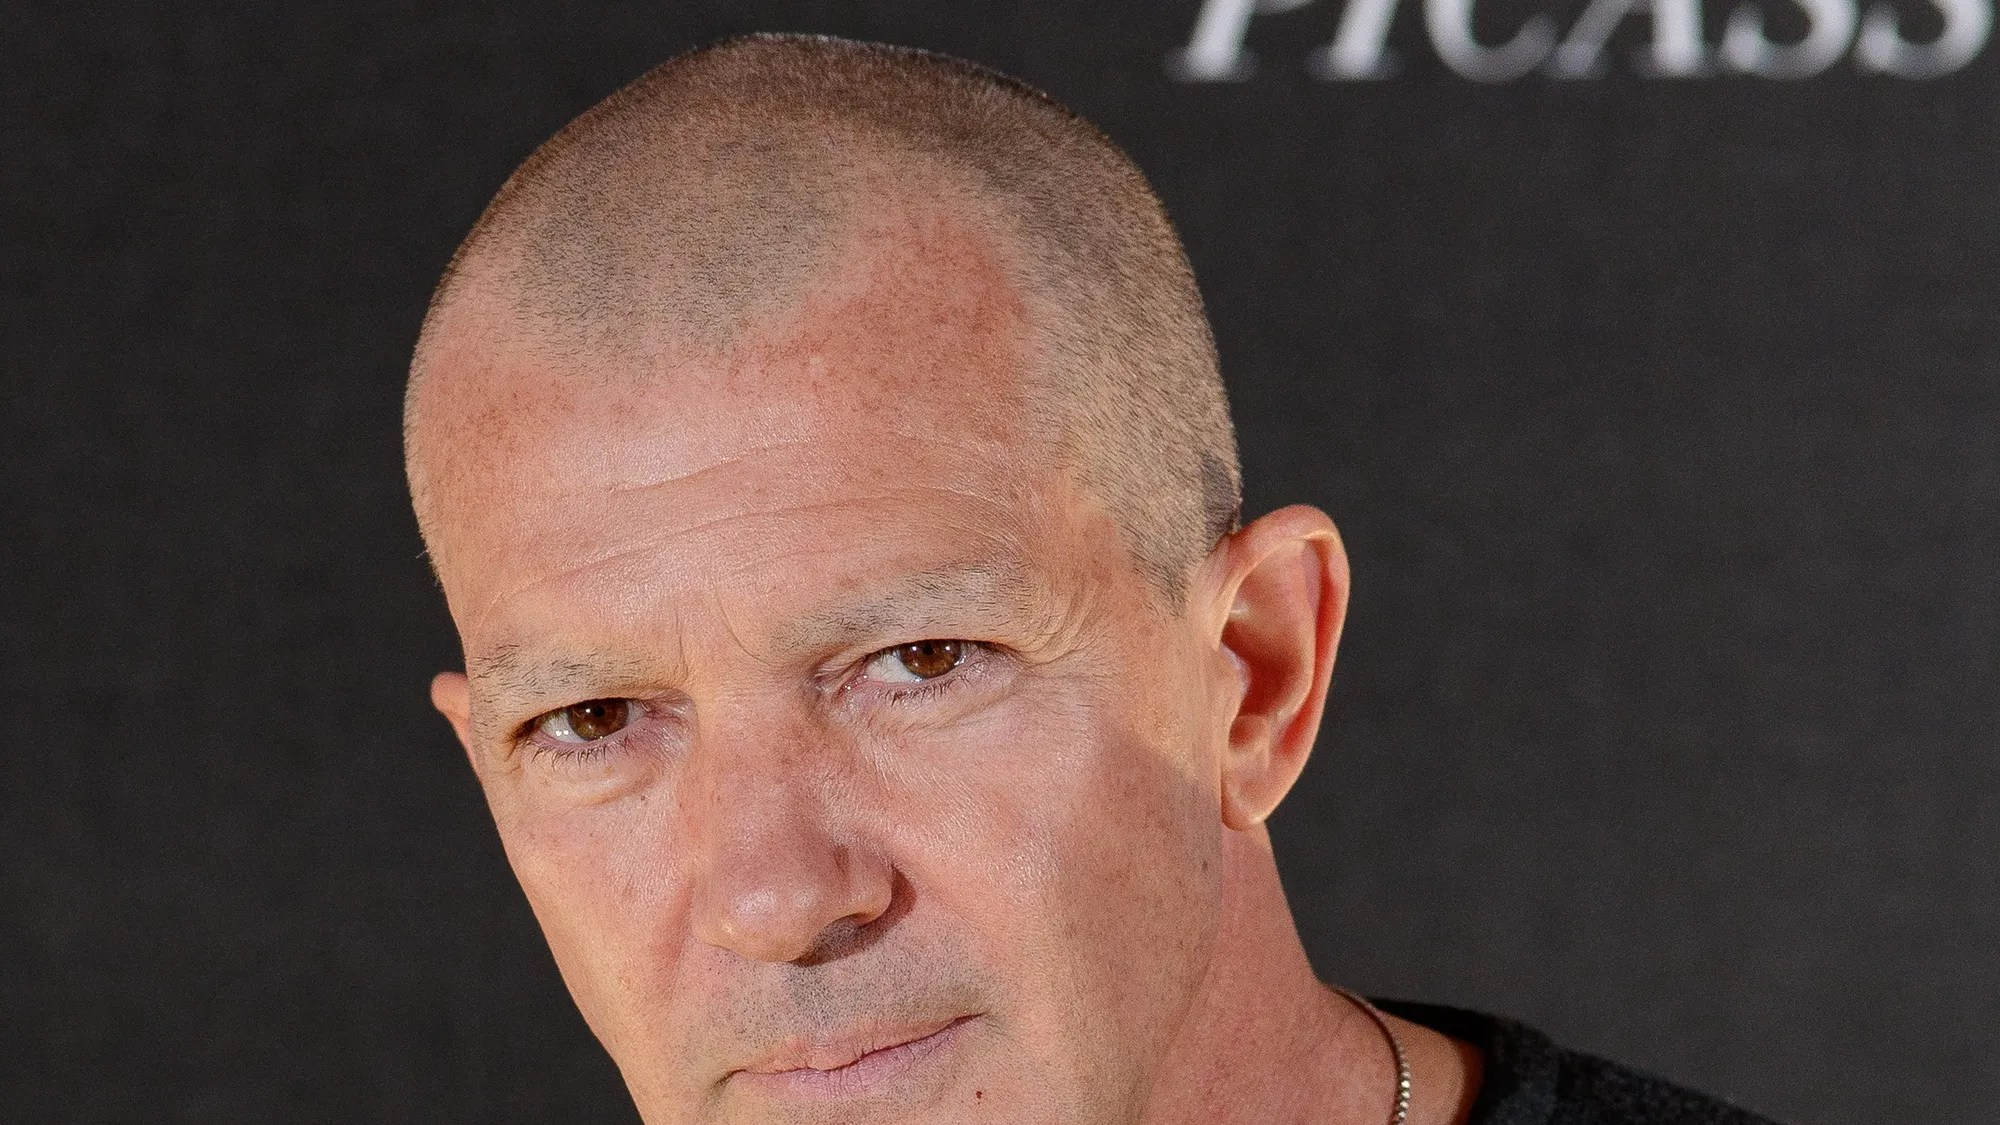 Antonio Banderas Shaved Off His Eyebrowsand Other